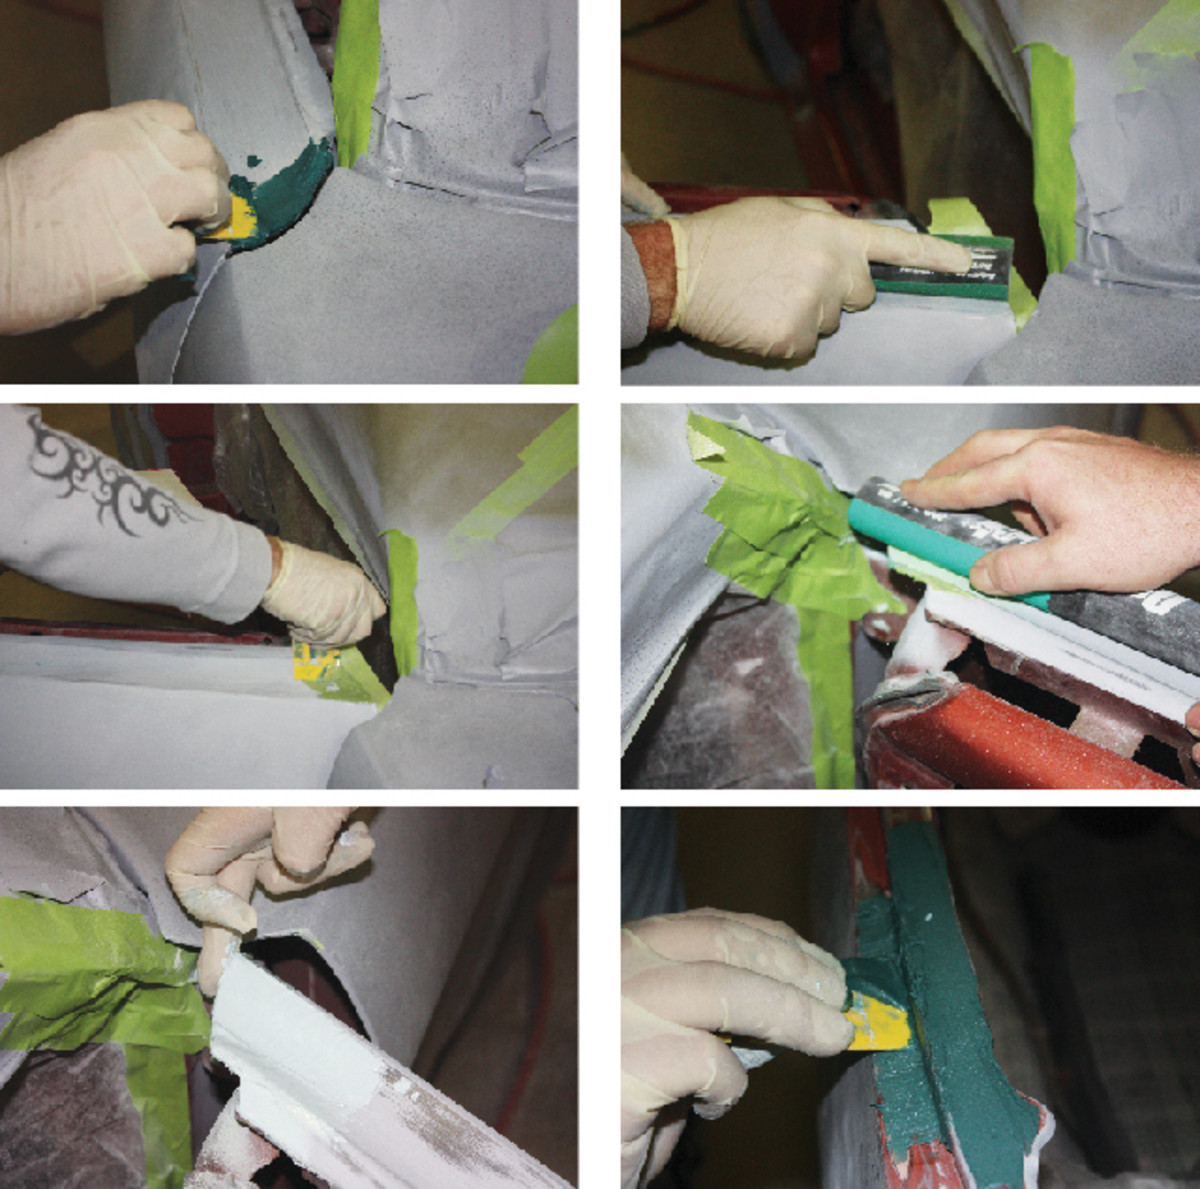 Fiberglass filler is used to smooth over a patch on the door edge (top). After that, a Shawn Schrock applies and sands a layer of putty (middle) before spreading on a layer finishing glaze (bottom left). A similar approach was used on the trunk lip (lower right), where fiberglass filler was used over a welded patch, and again followed by putty and glaze.